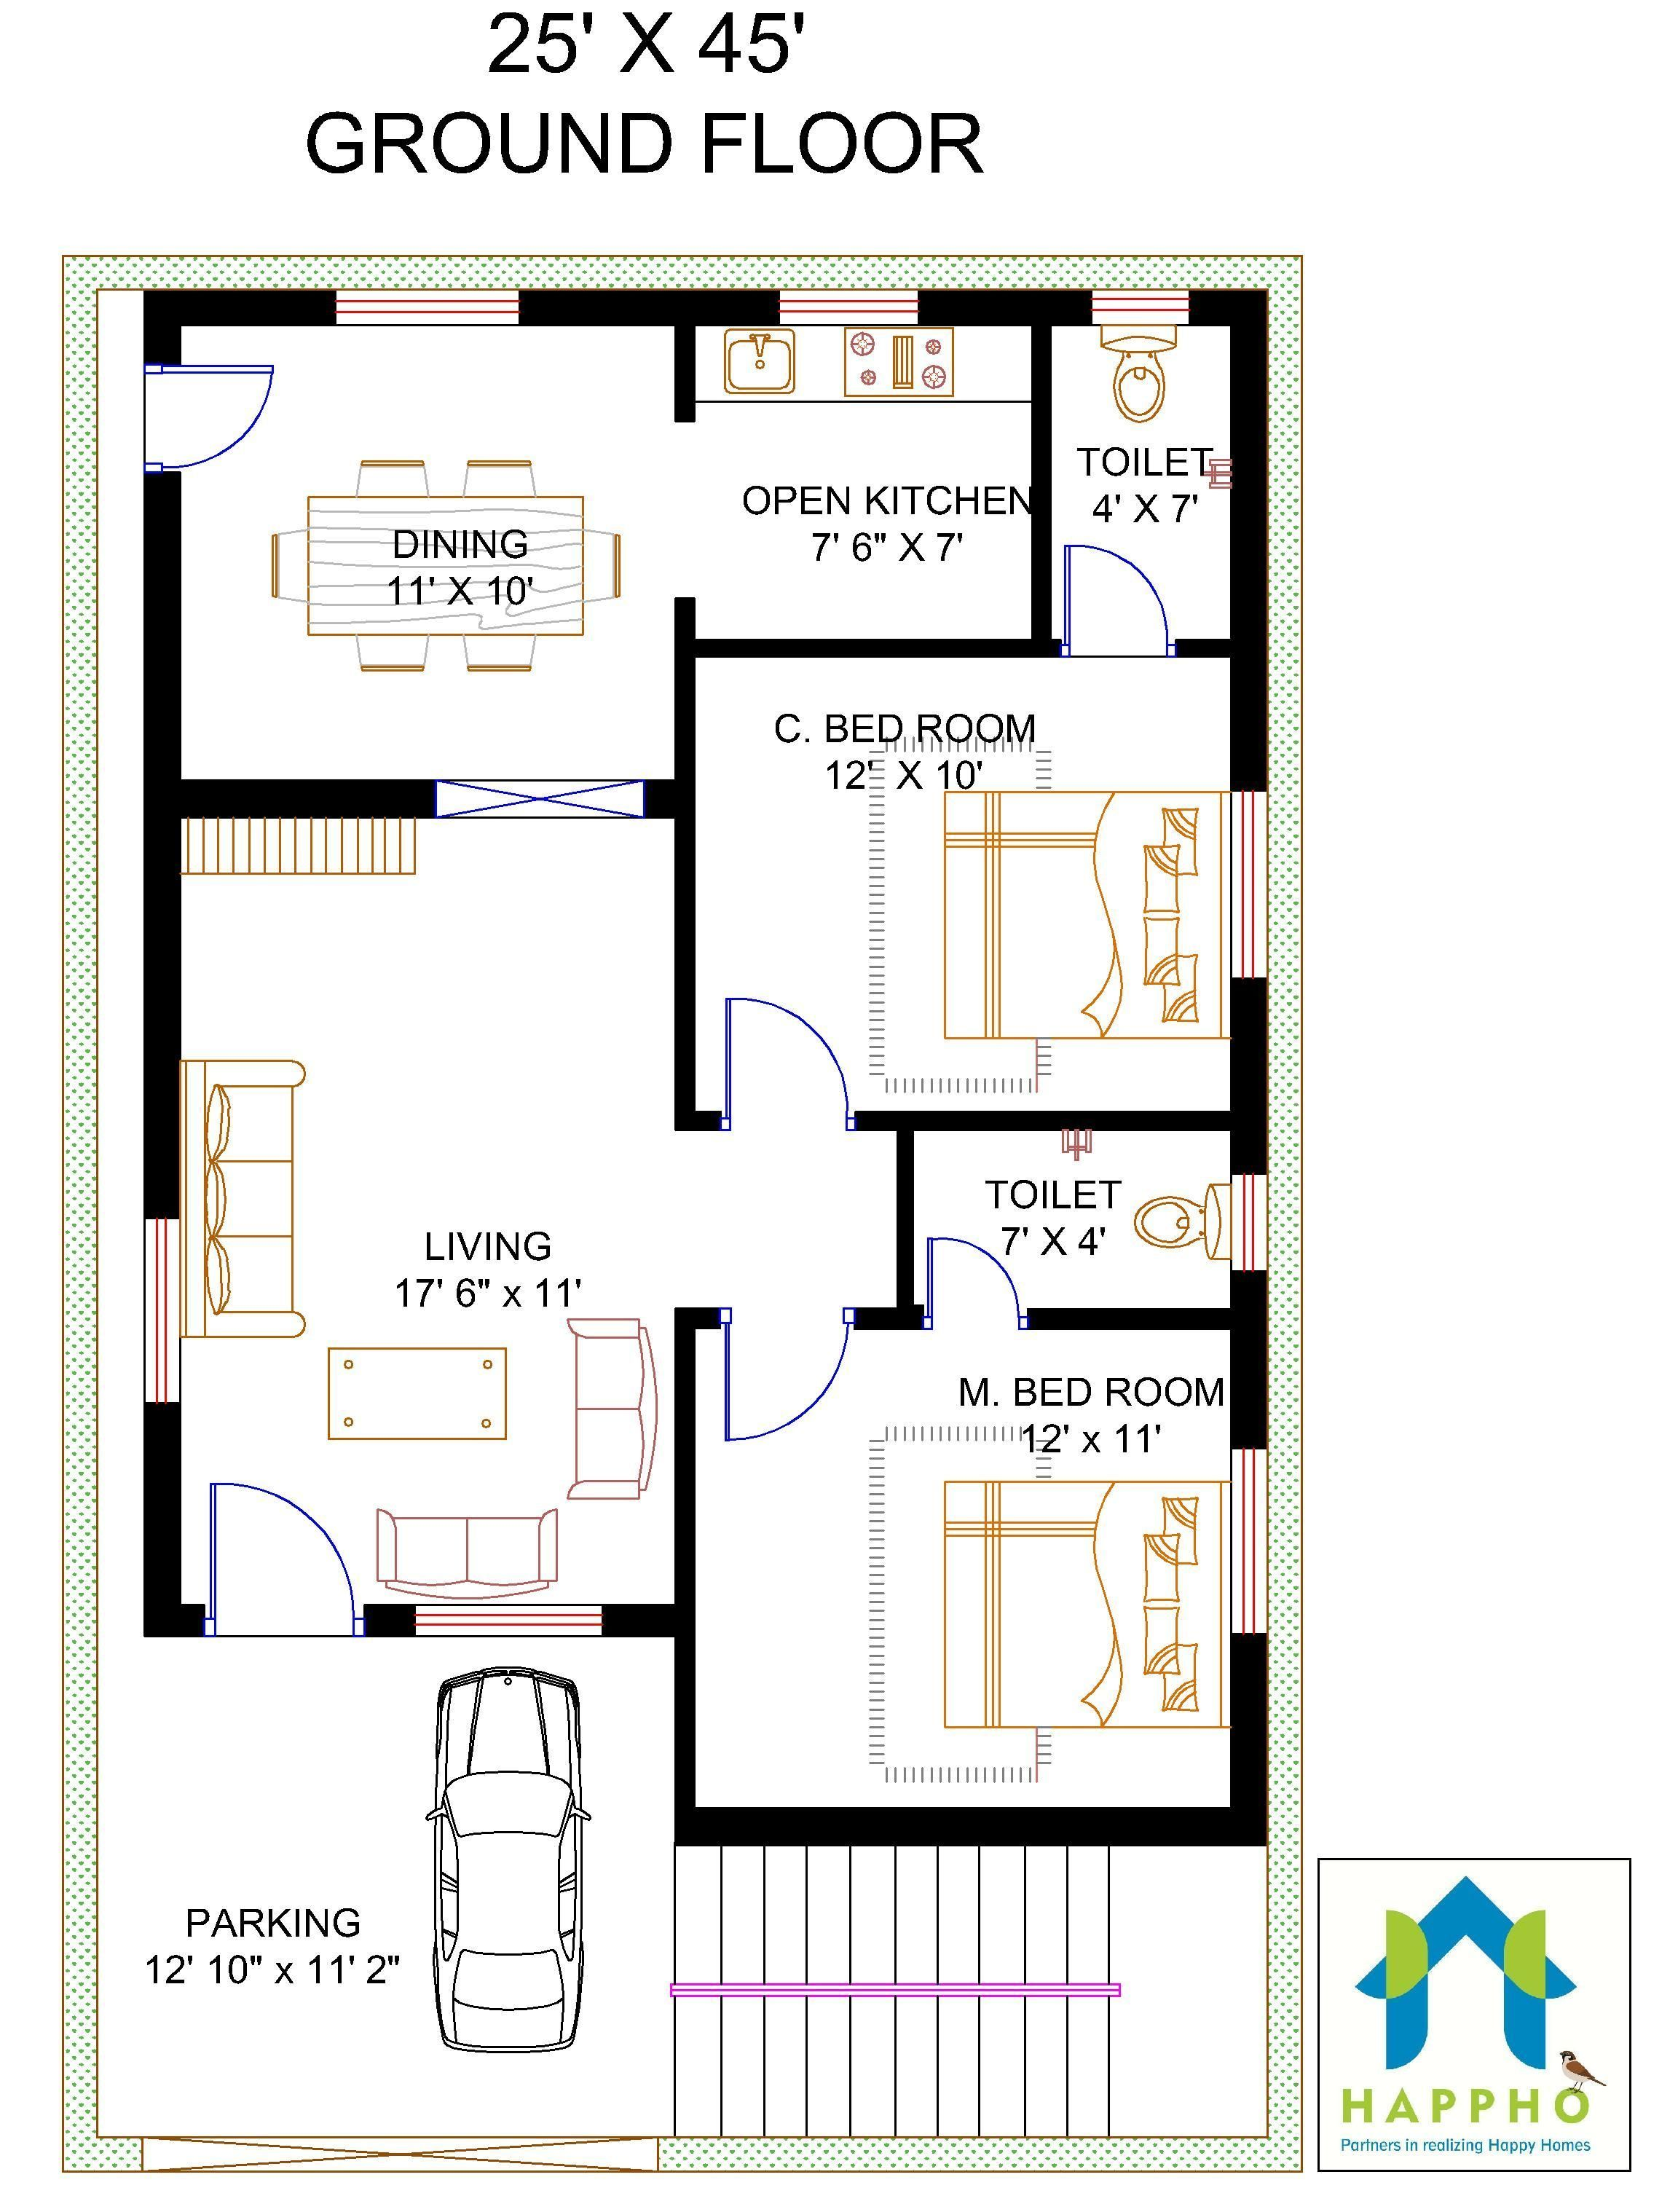 2 Bhk Floor Plans Of 2545 Google Search Luxury Houses Plans